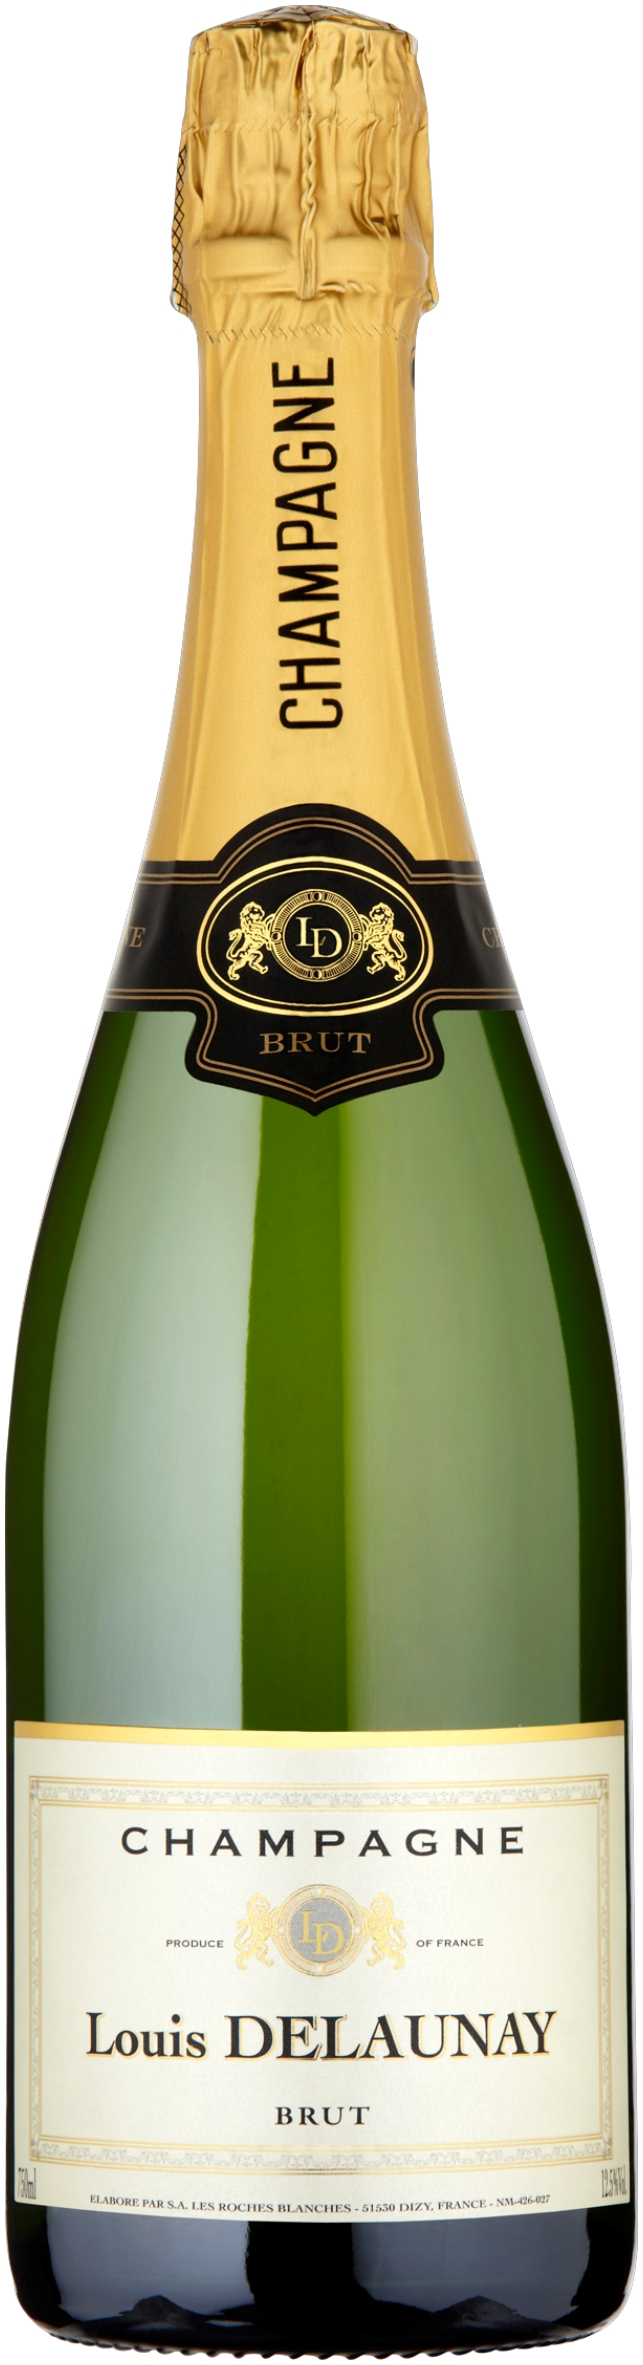 Stop everything, Tesco is selling champagne for £8